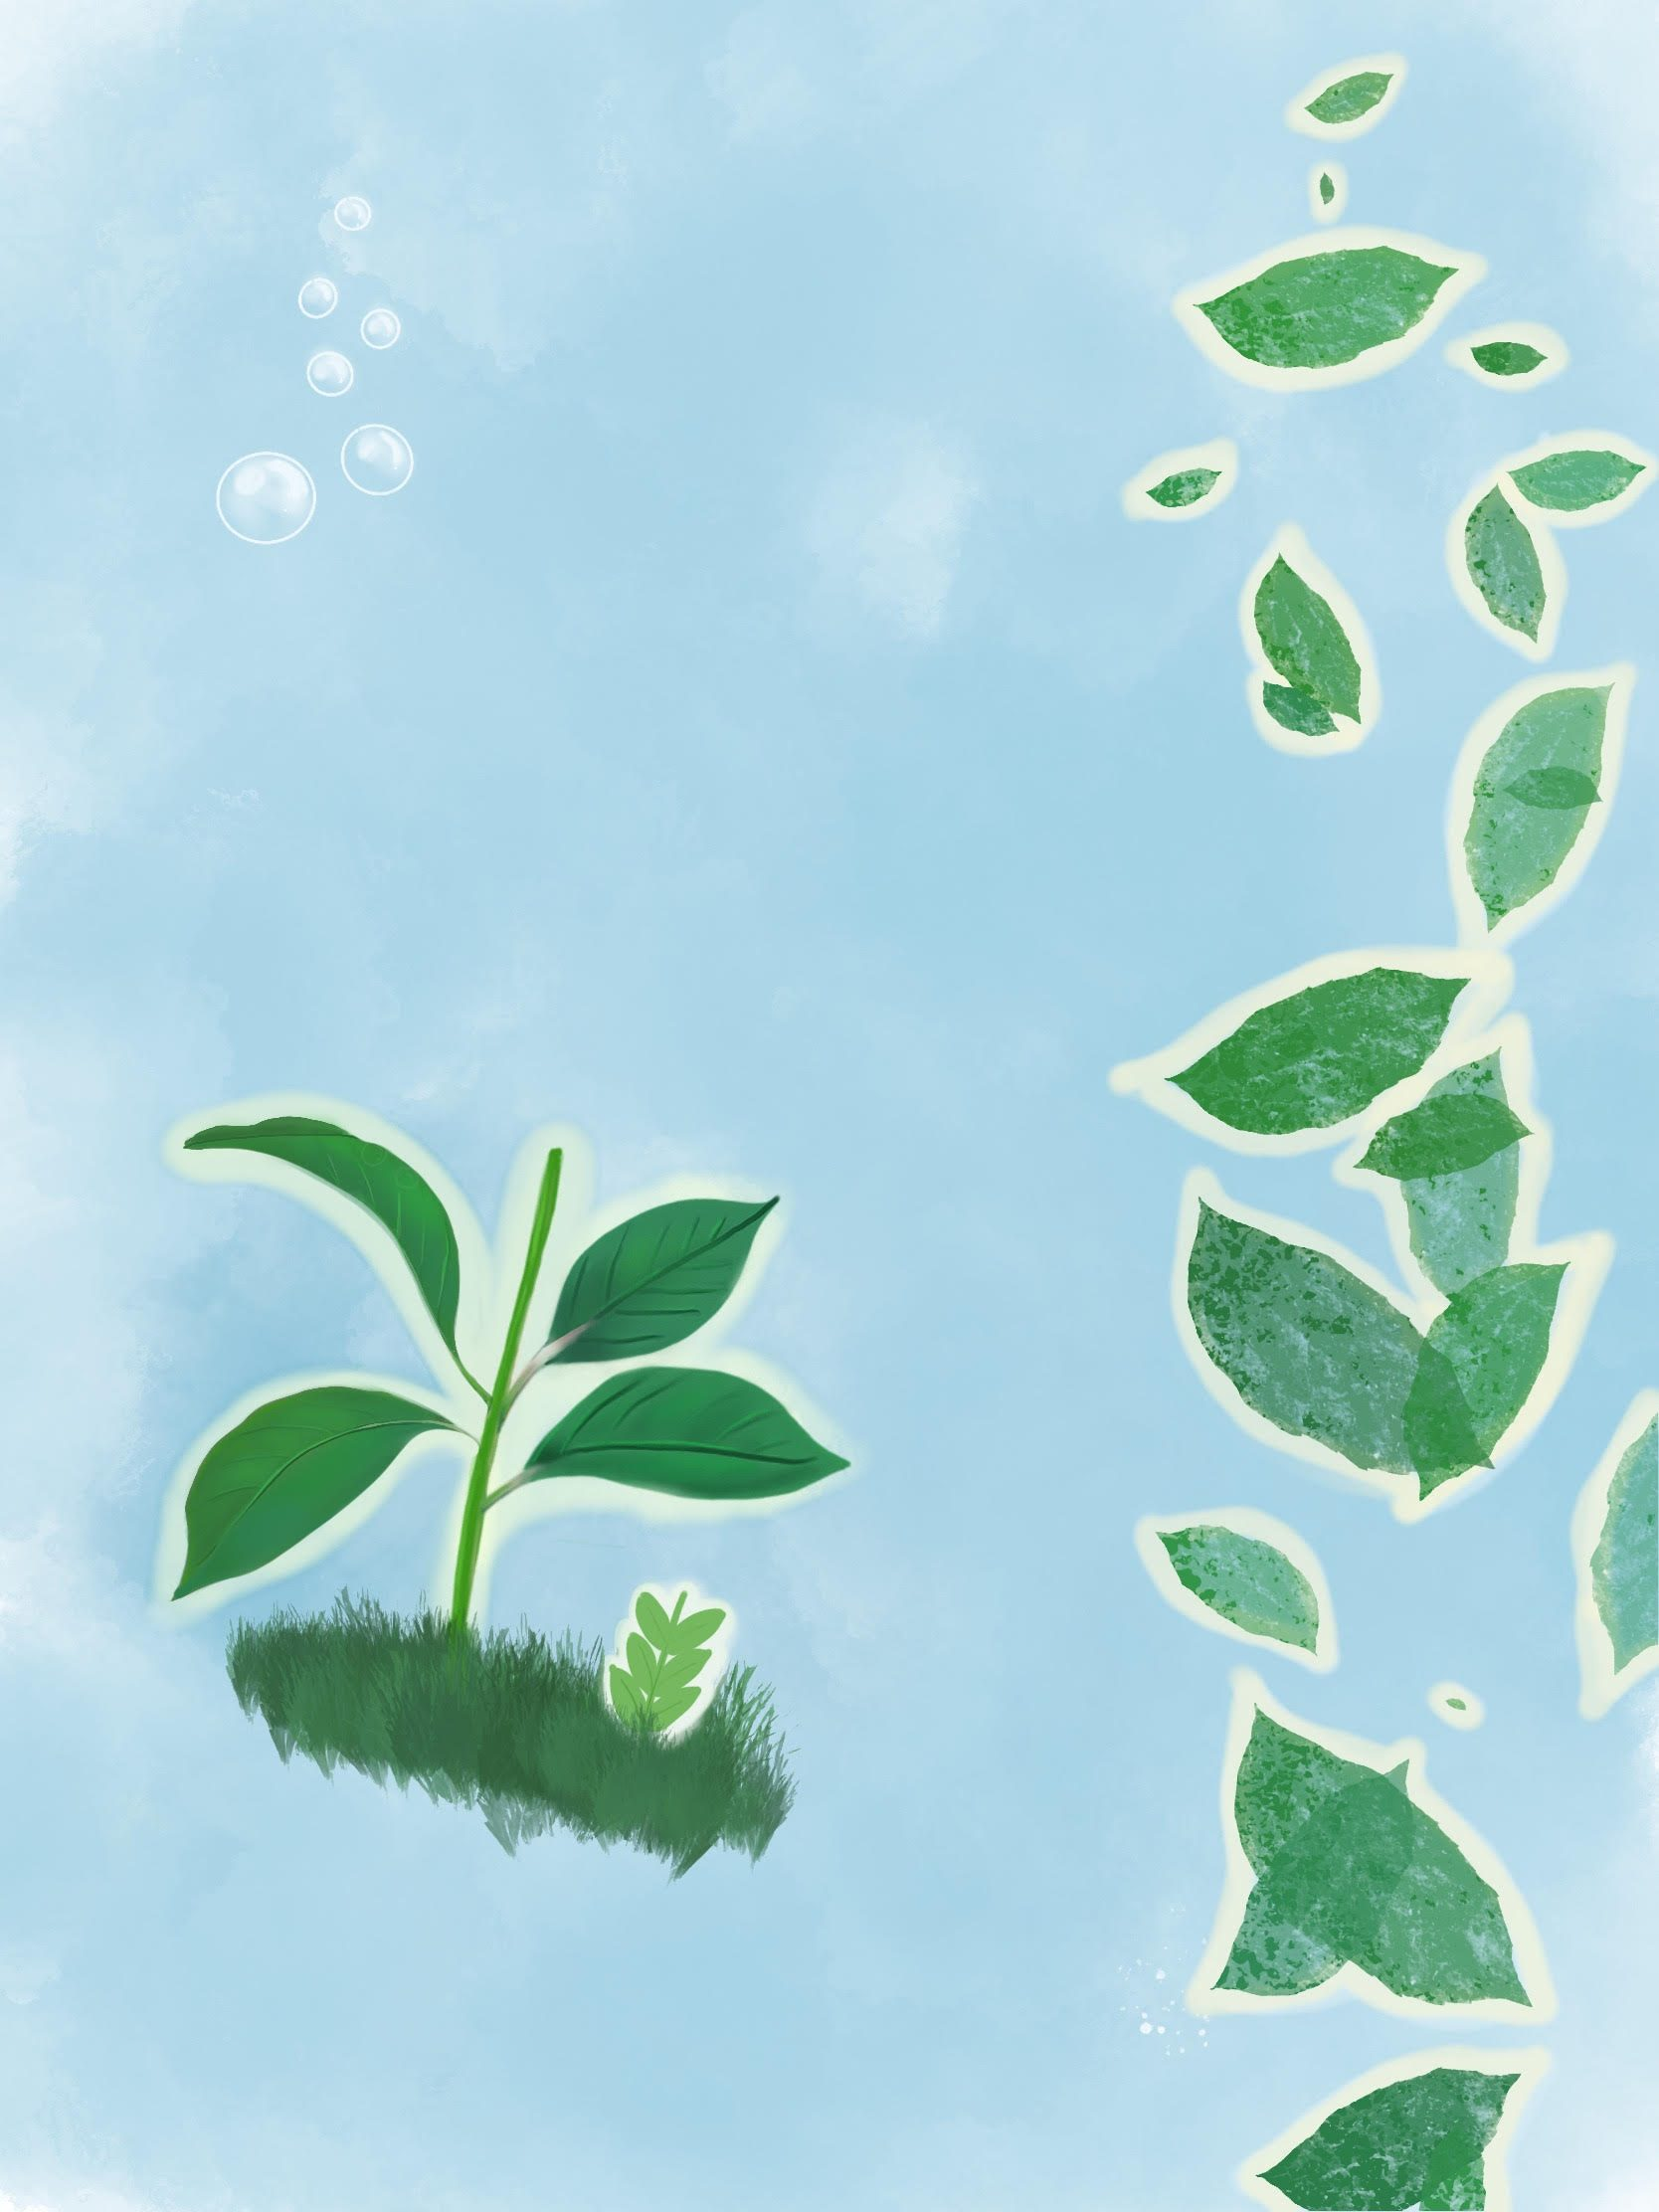 Keeping Dry Underwater: Learning Superhydrophobicity from Plants